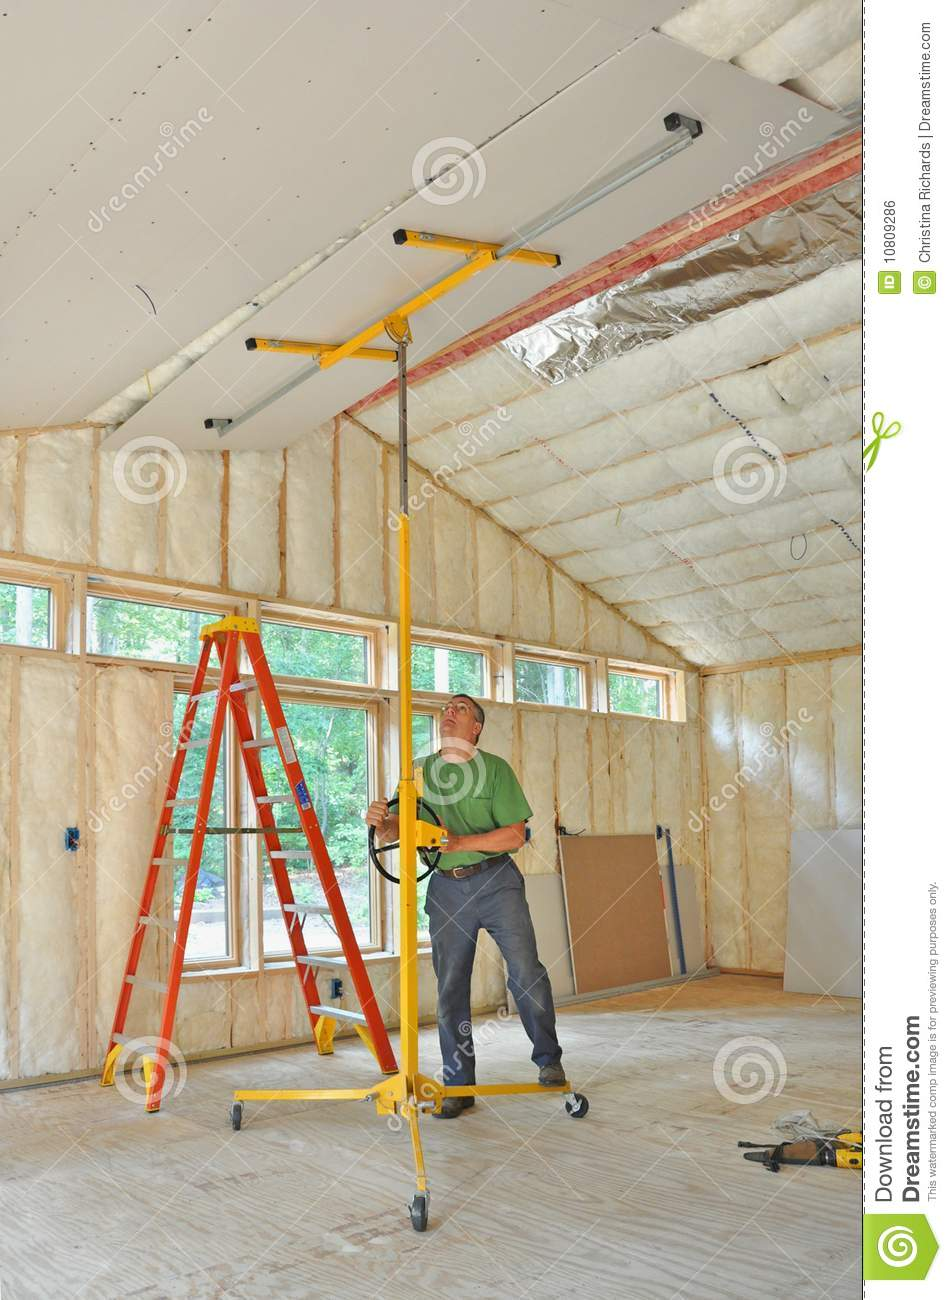 How to hang drywall on a ceiling - Man Installing Drywall On Ceiling Royalty Free Stock Image Image